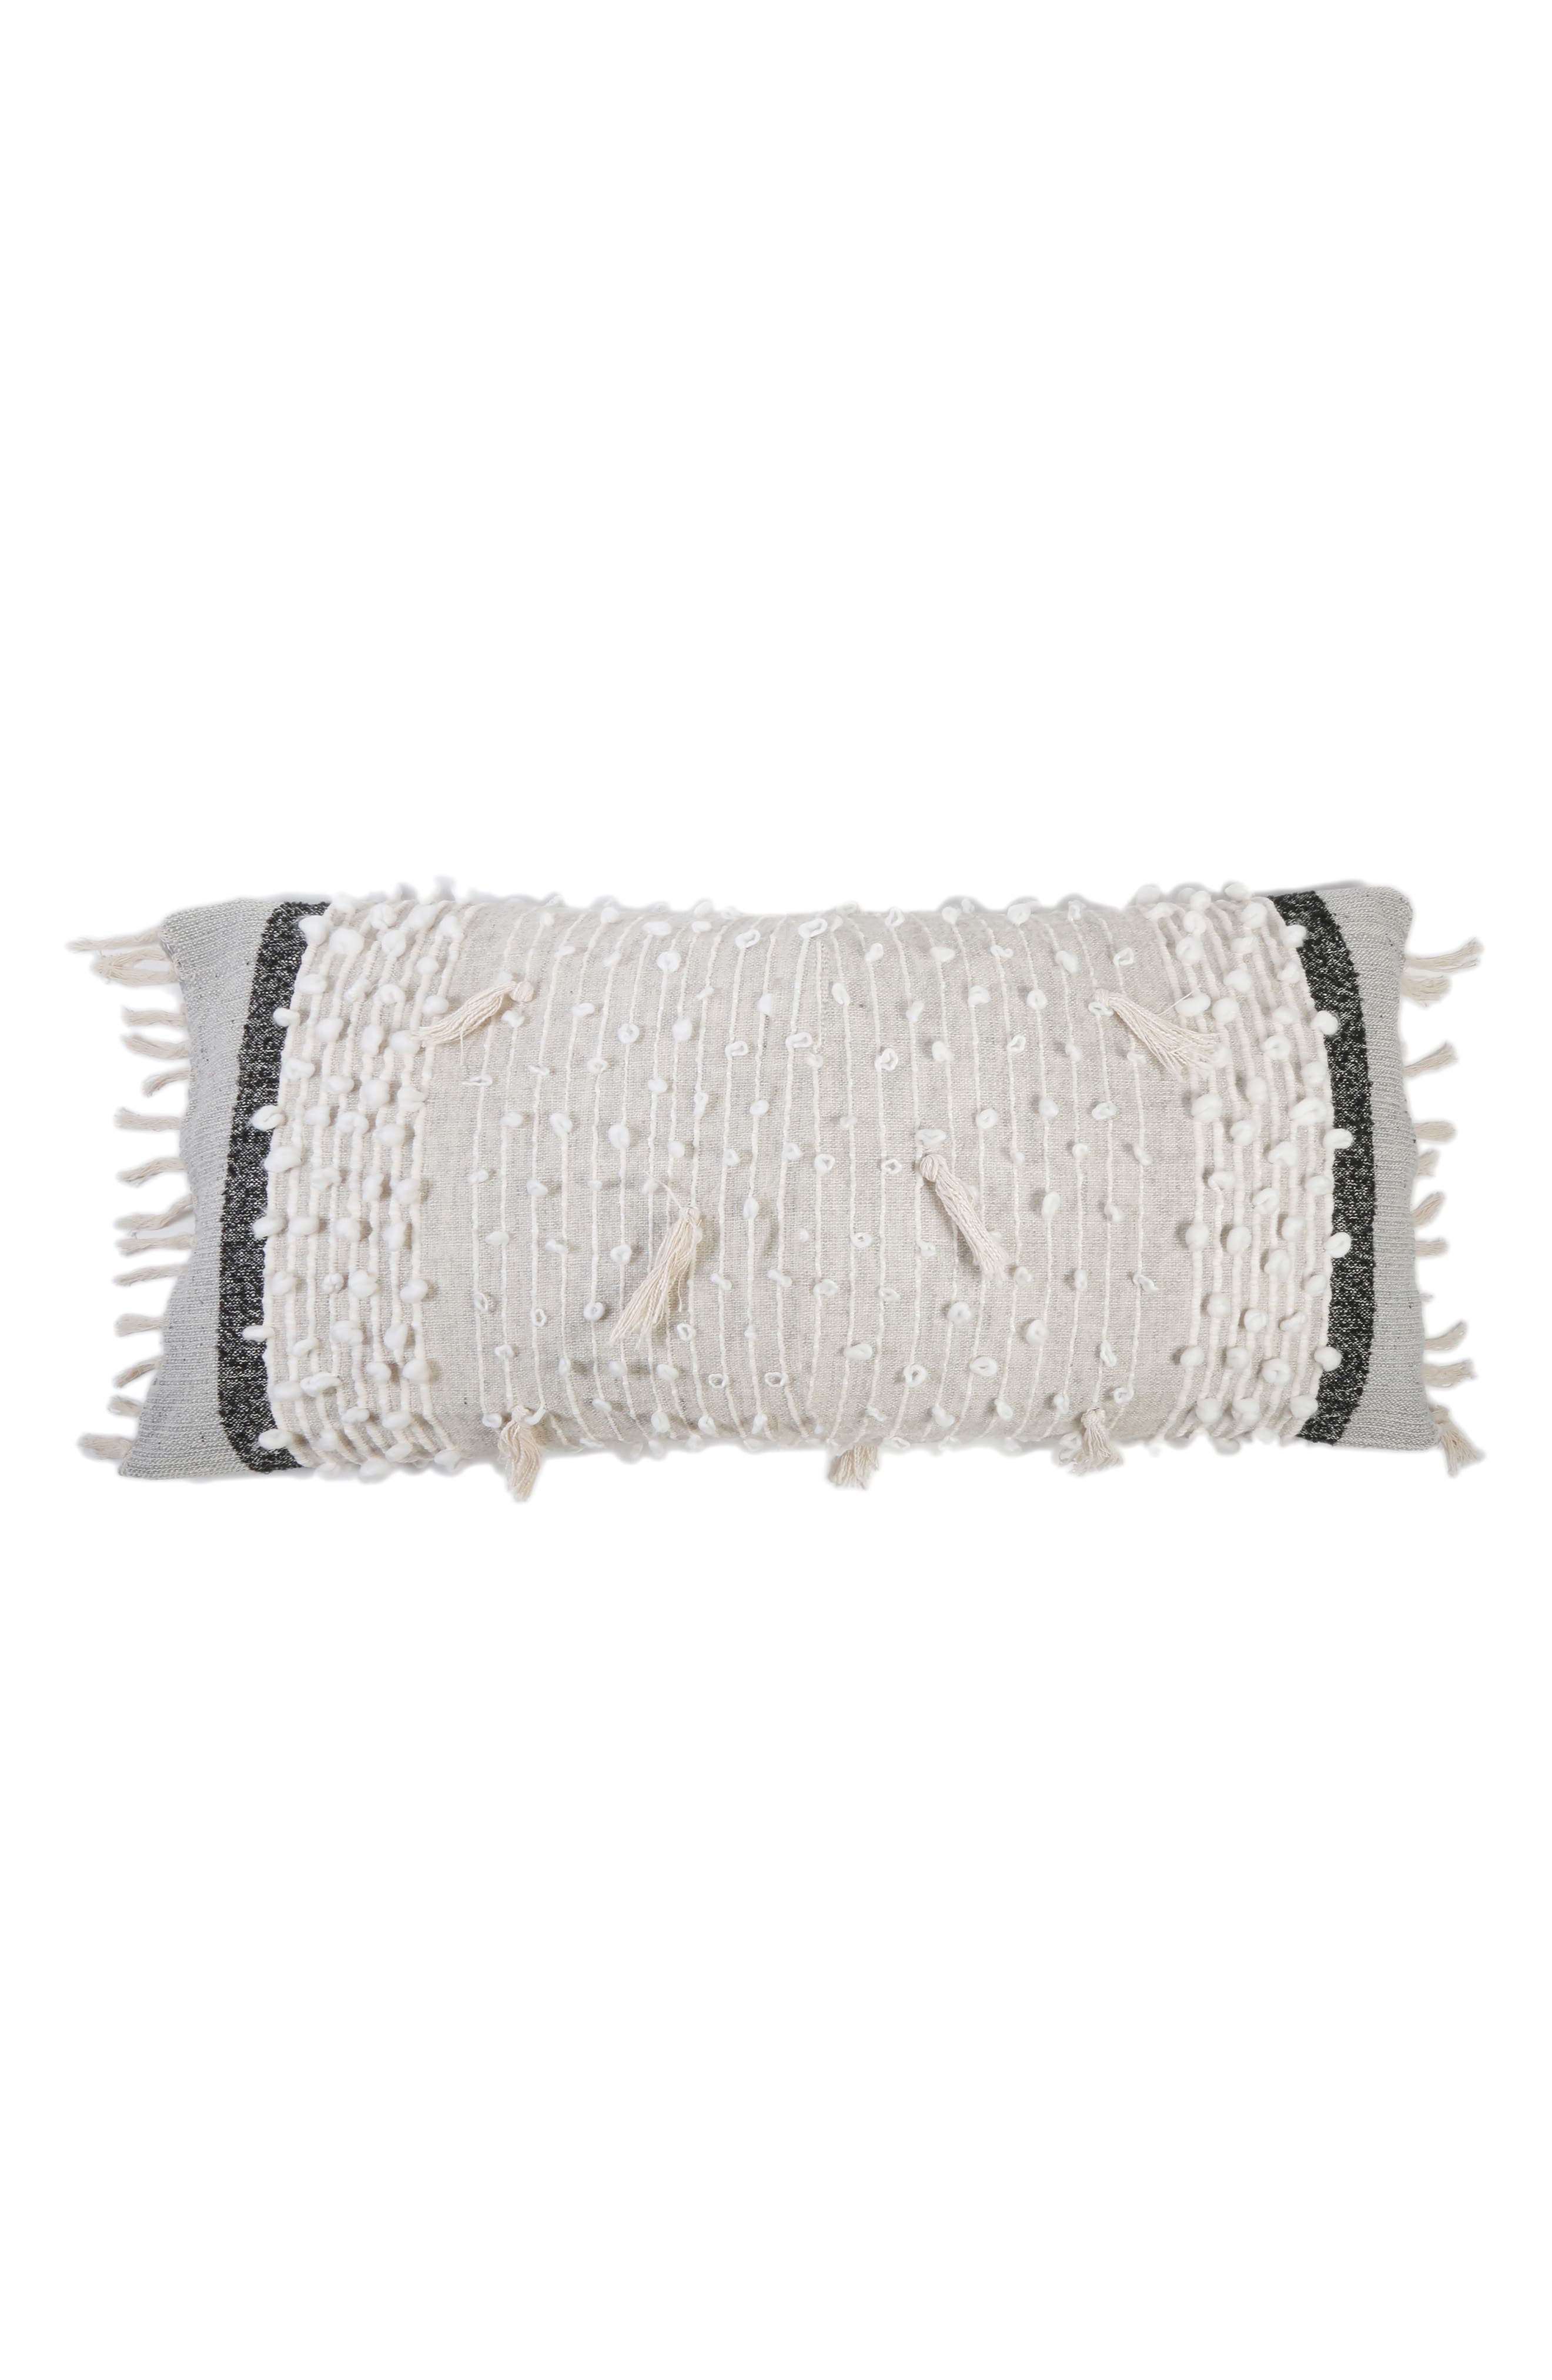 POM POM AT HOME,                             Ziggy Accent Pillow,                             Main thumbnail 1, color,                             020